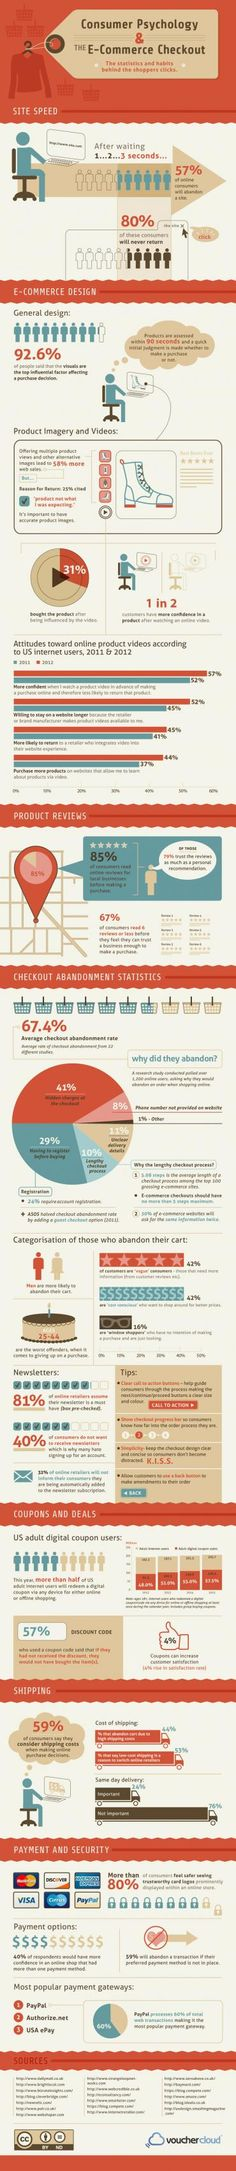 Infographic: The psychology of the online shopper | MyCustomer